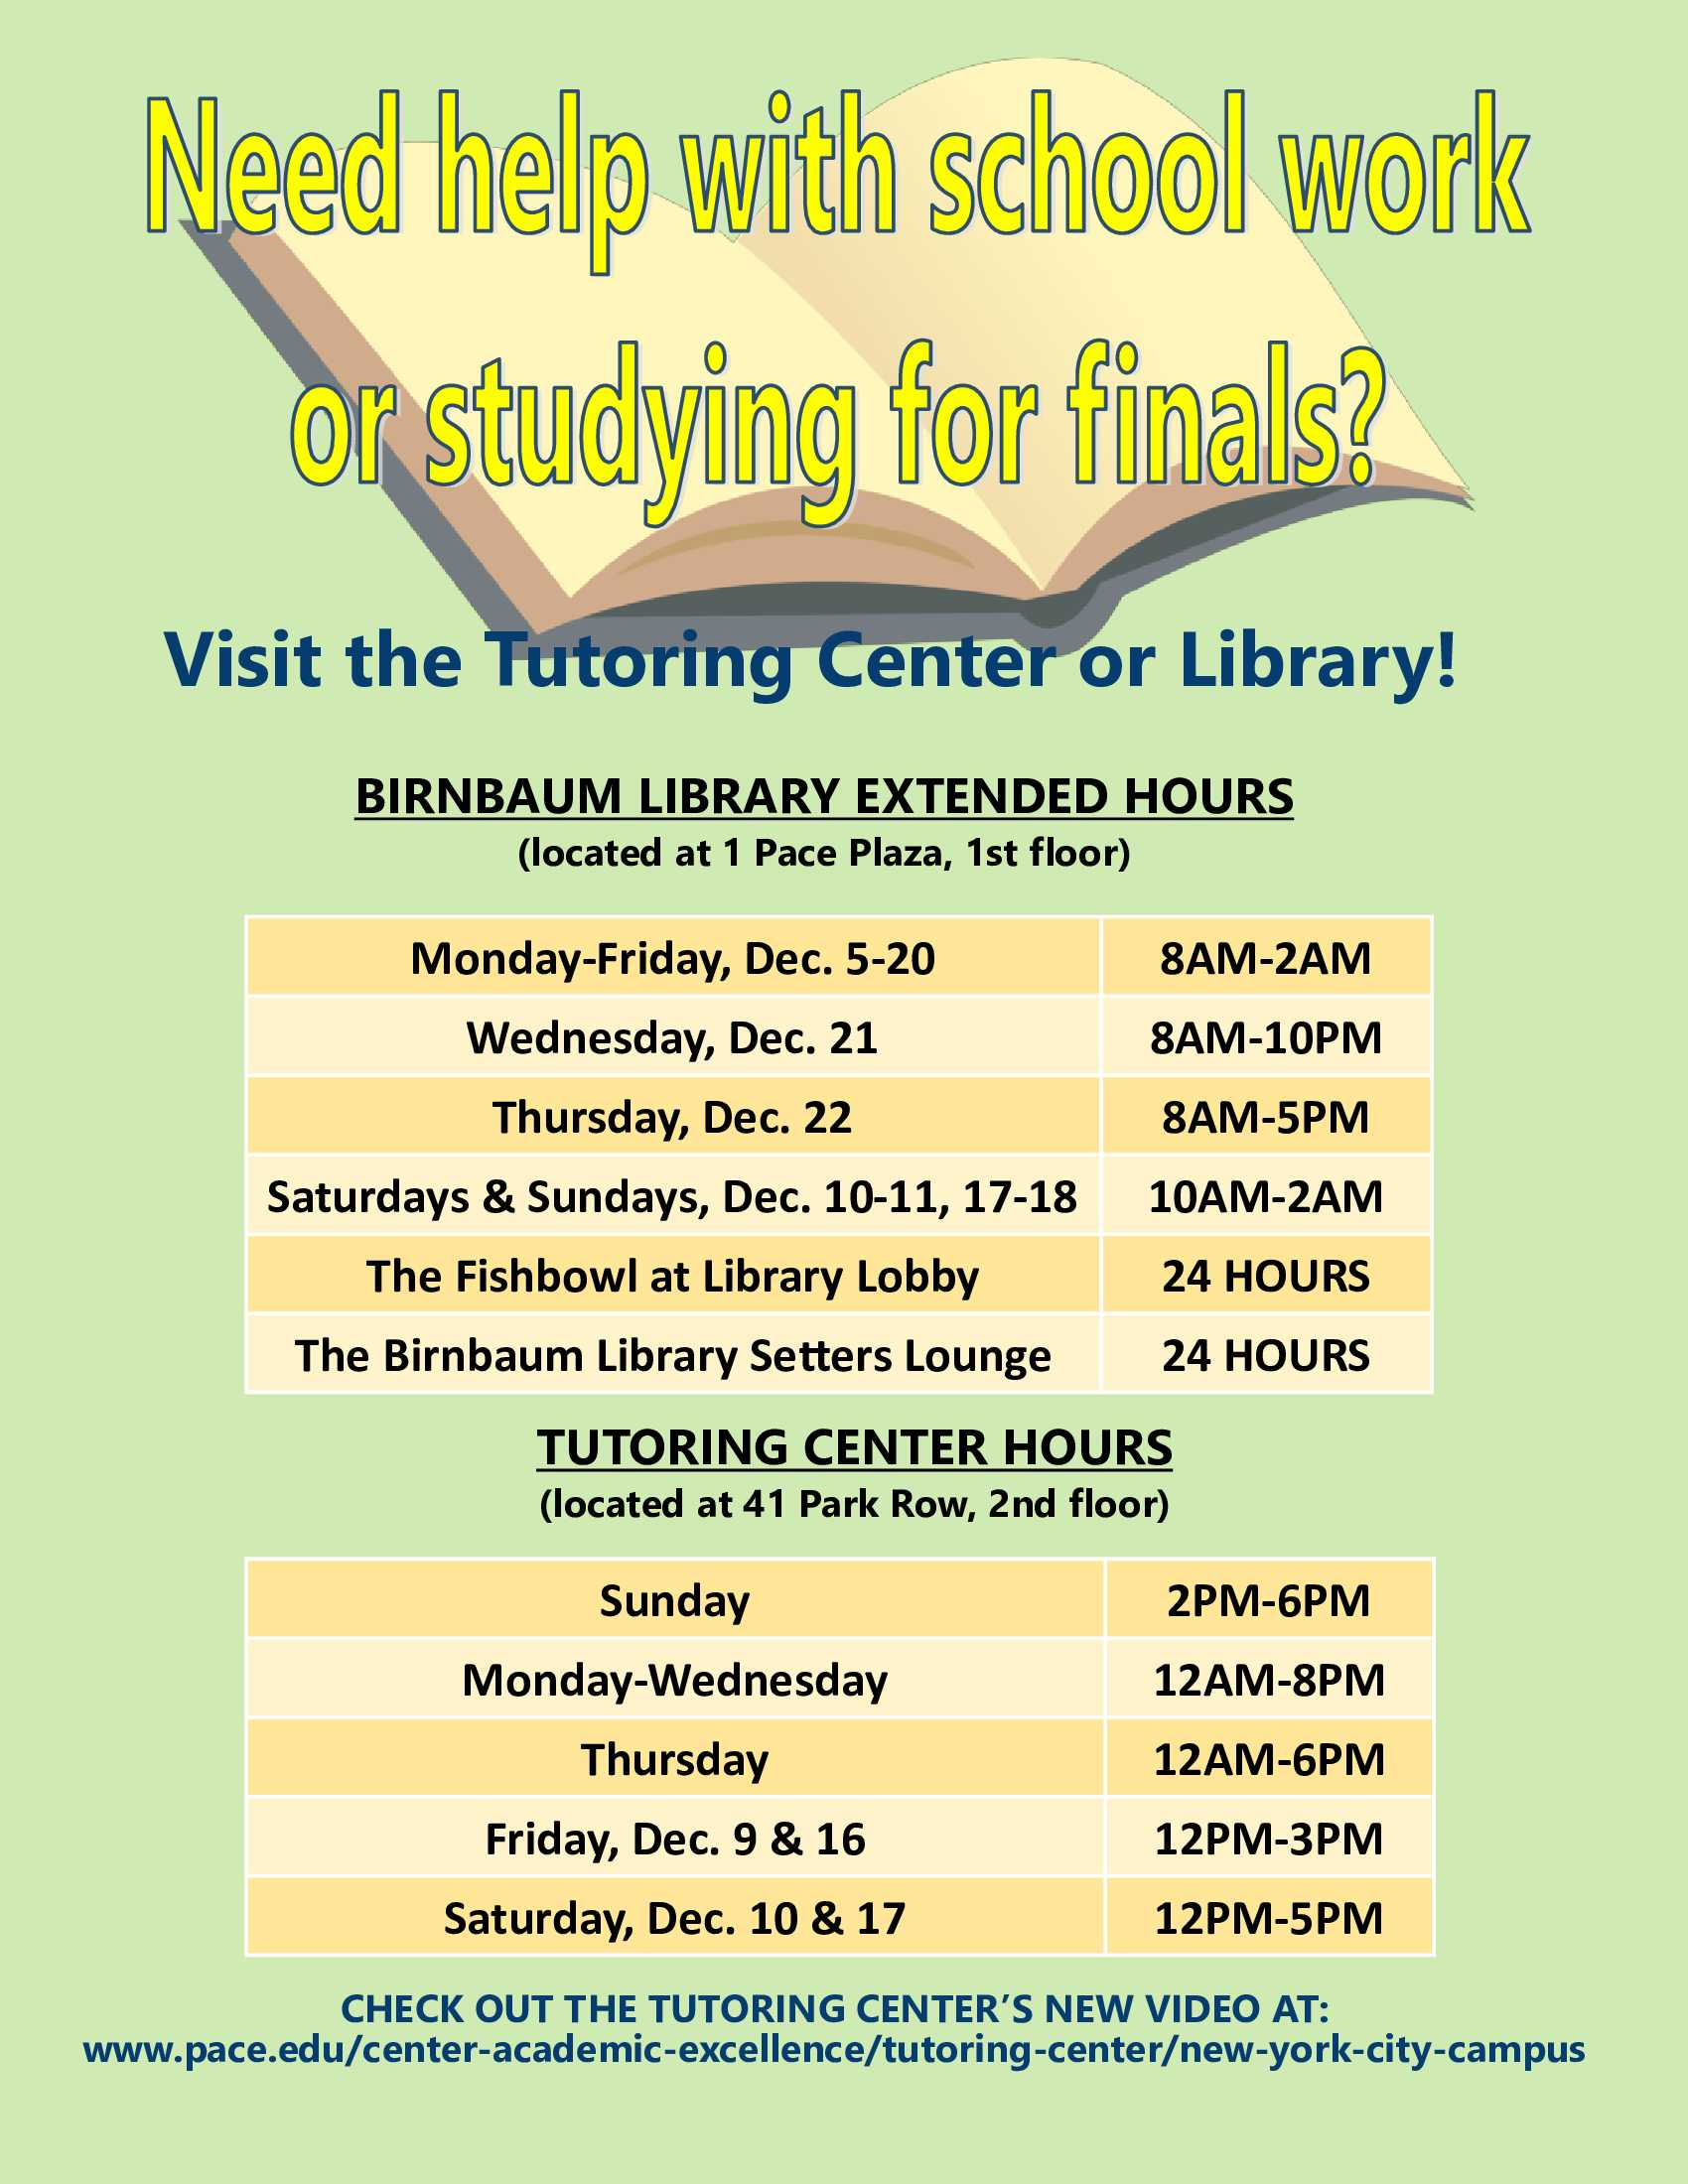 Information regarding Tutoring Center Extended Final Hours is as follows Start date is November 30 2016 and End Date is December 15 2016 and File is Browse and File Name is NYC-Tutoring-Center-flyerNOV2016_comp.jpg and Email is jcrespo@pace.edu and Name is Jen Crespo and Group Name is OSS and Affiliation is recognized student organization and Panel is Side and Name of Ad/Event is Tutoring Center Extended Final Hours and